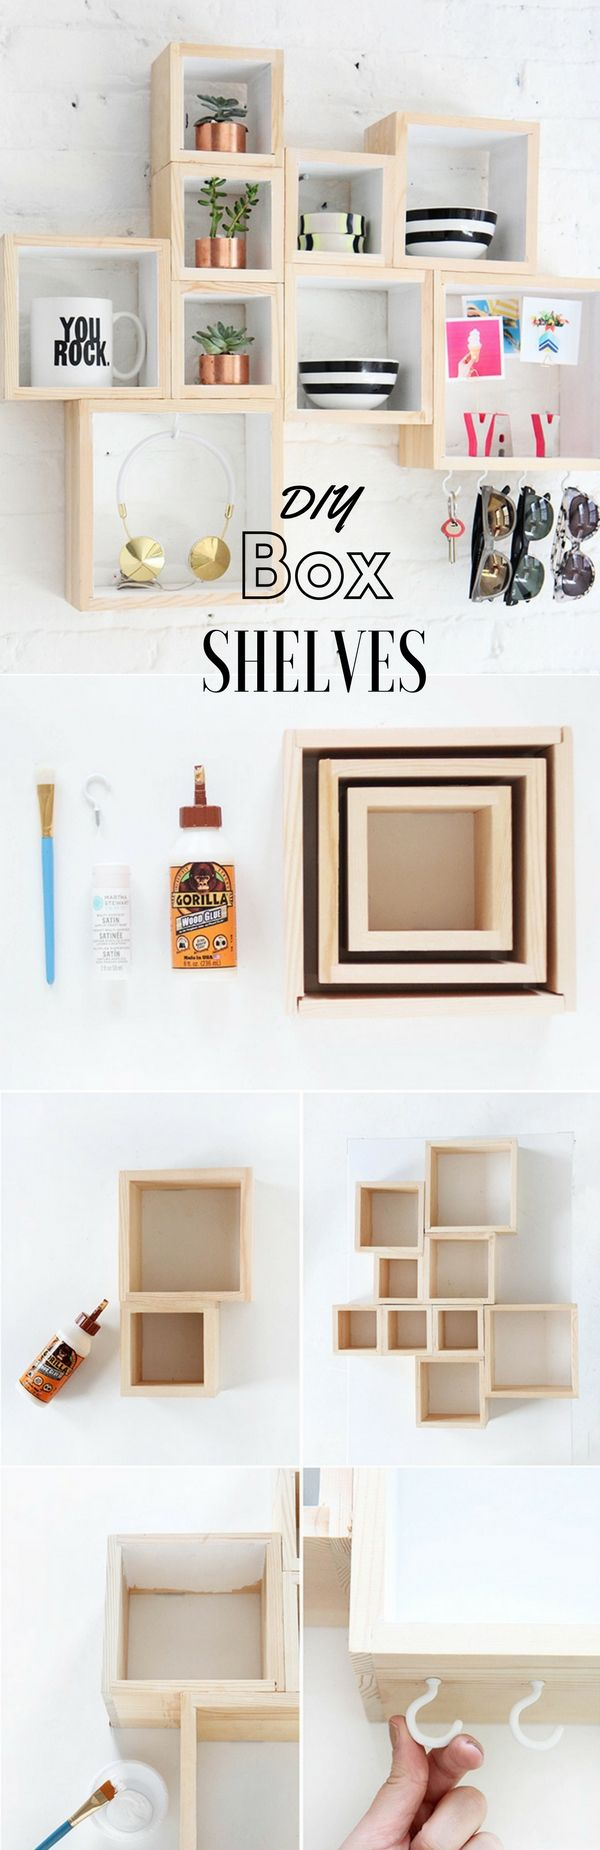 15 Ingenious Diy Decor Tricks You 39 Ve Never Thought Of Home Decor